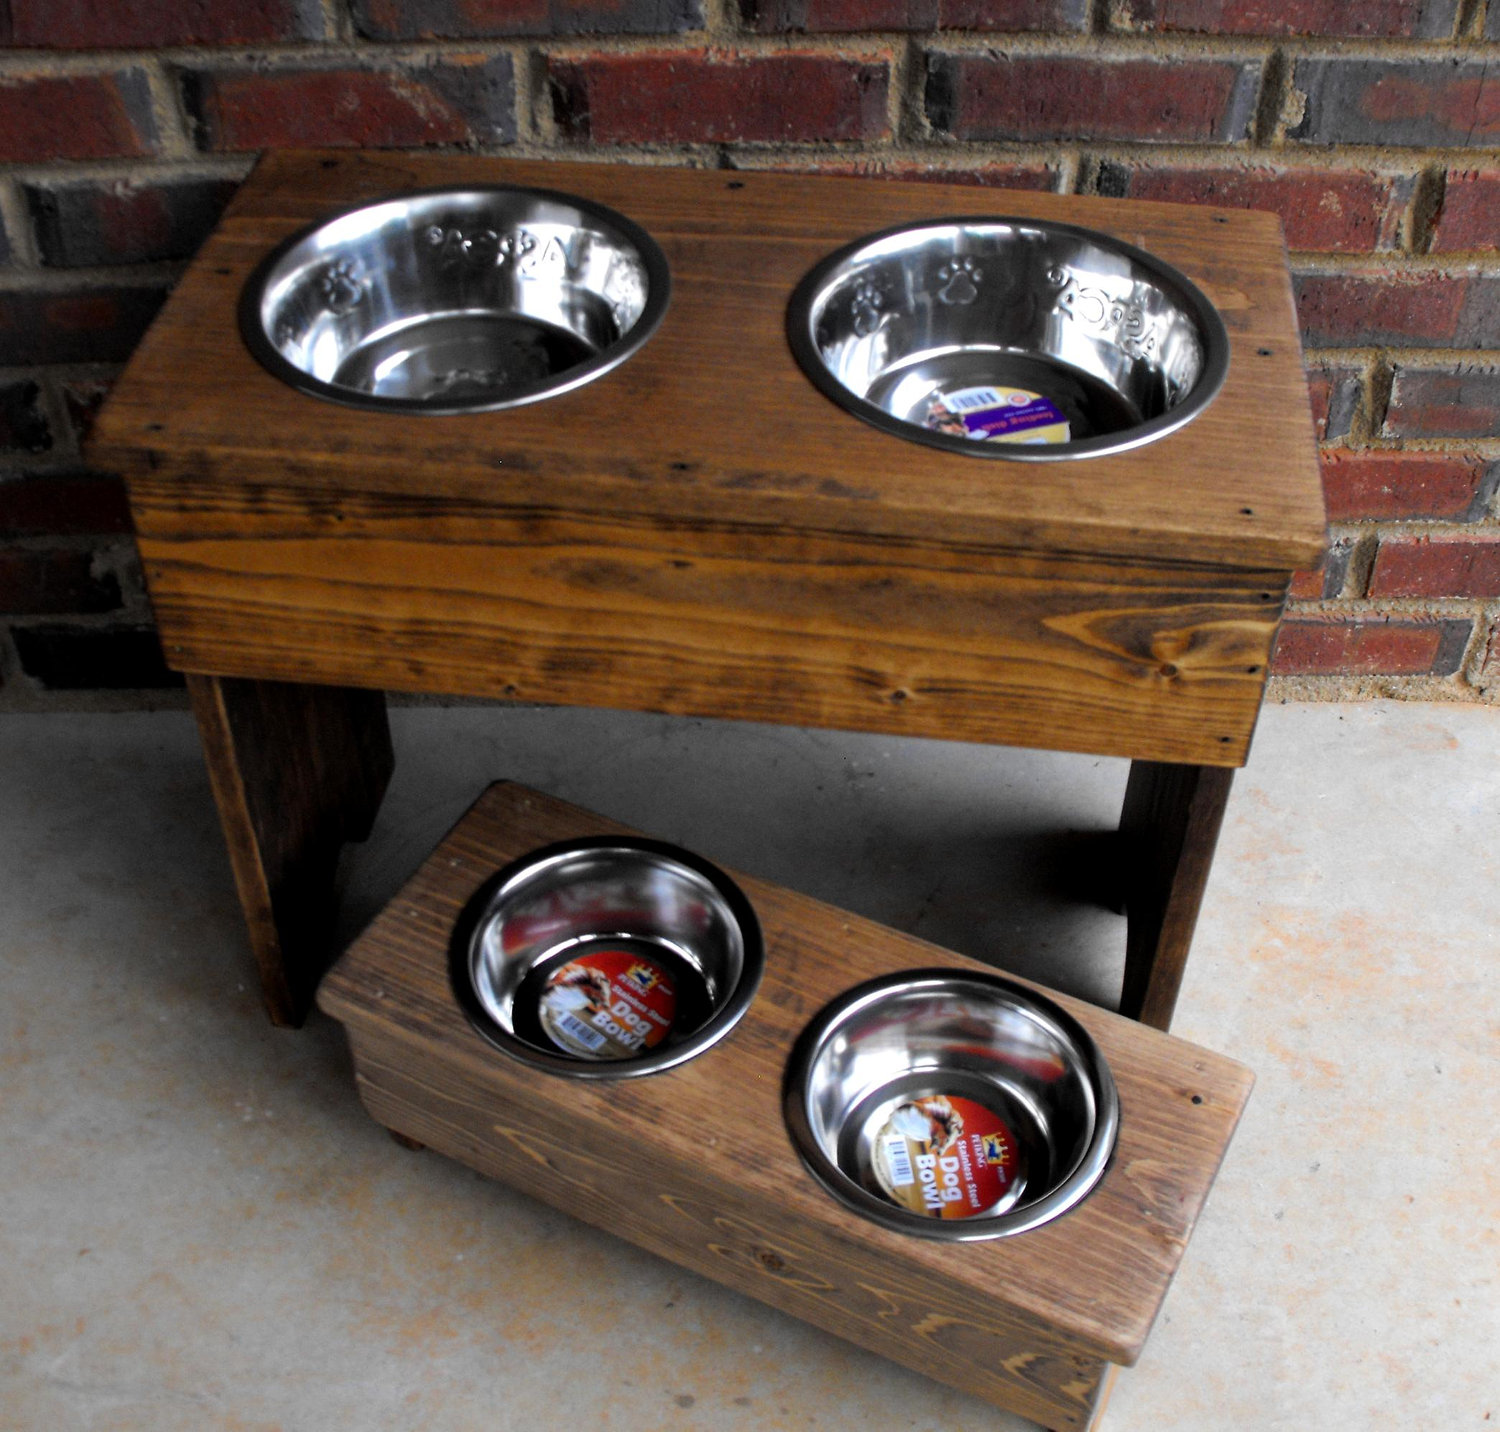 Charming Elevated Dog Bowls for Best Dog Bowl Ideas: Stainless Steel Dog Water Dispenser | Elevated Dog Bowls | Large Dog Water Dispenser